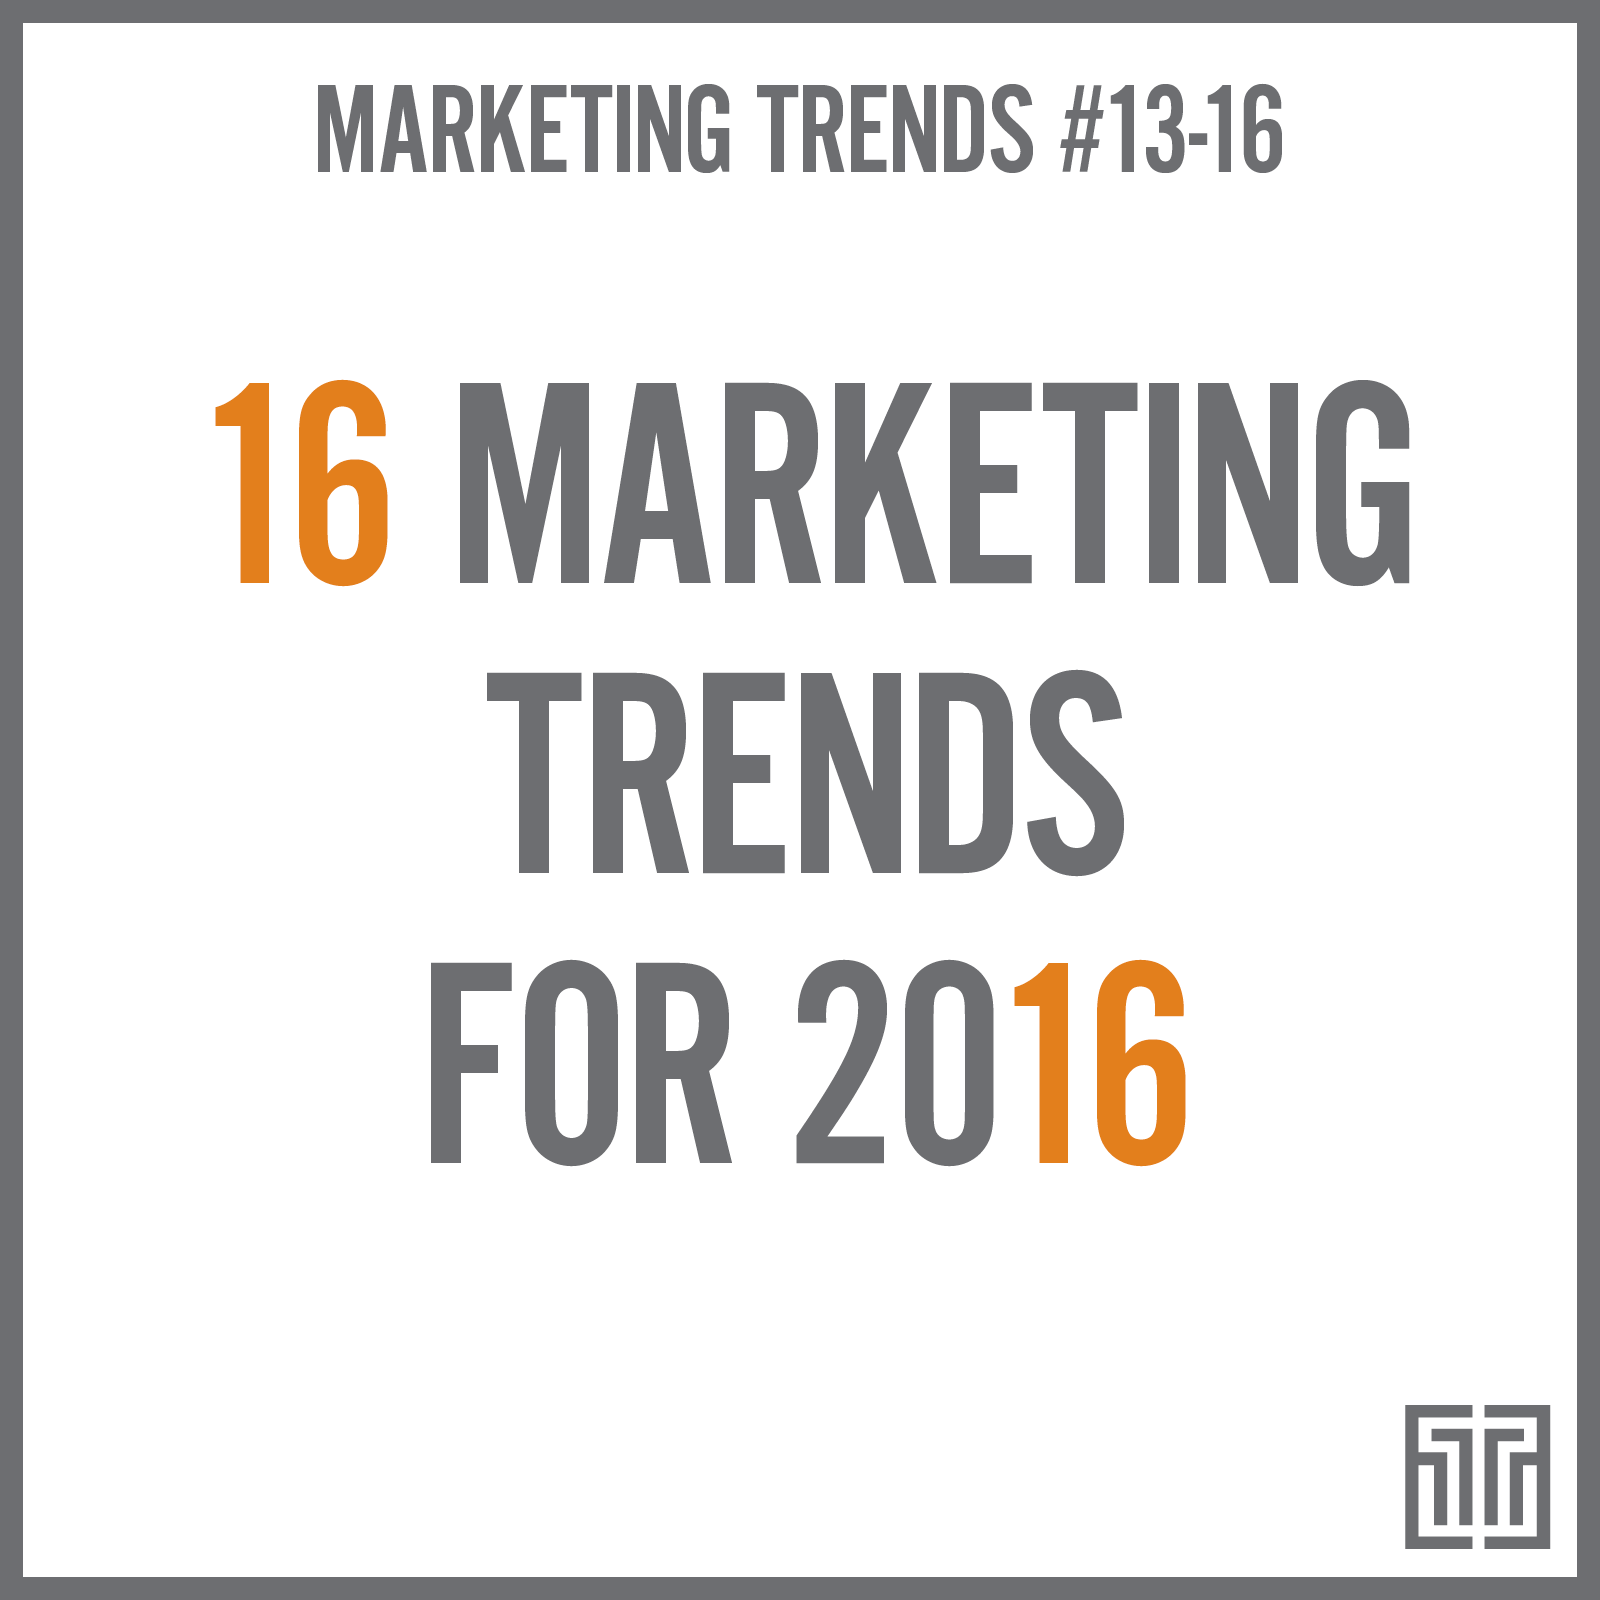 16 Marketing Trends for 2016: Trends 13-16